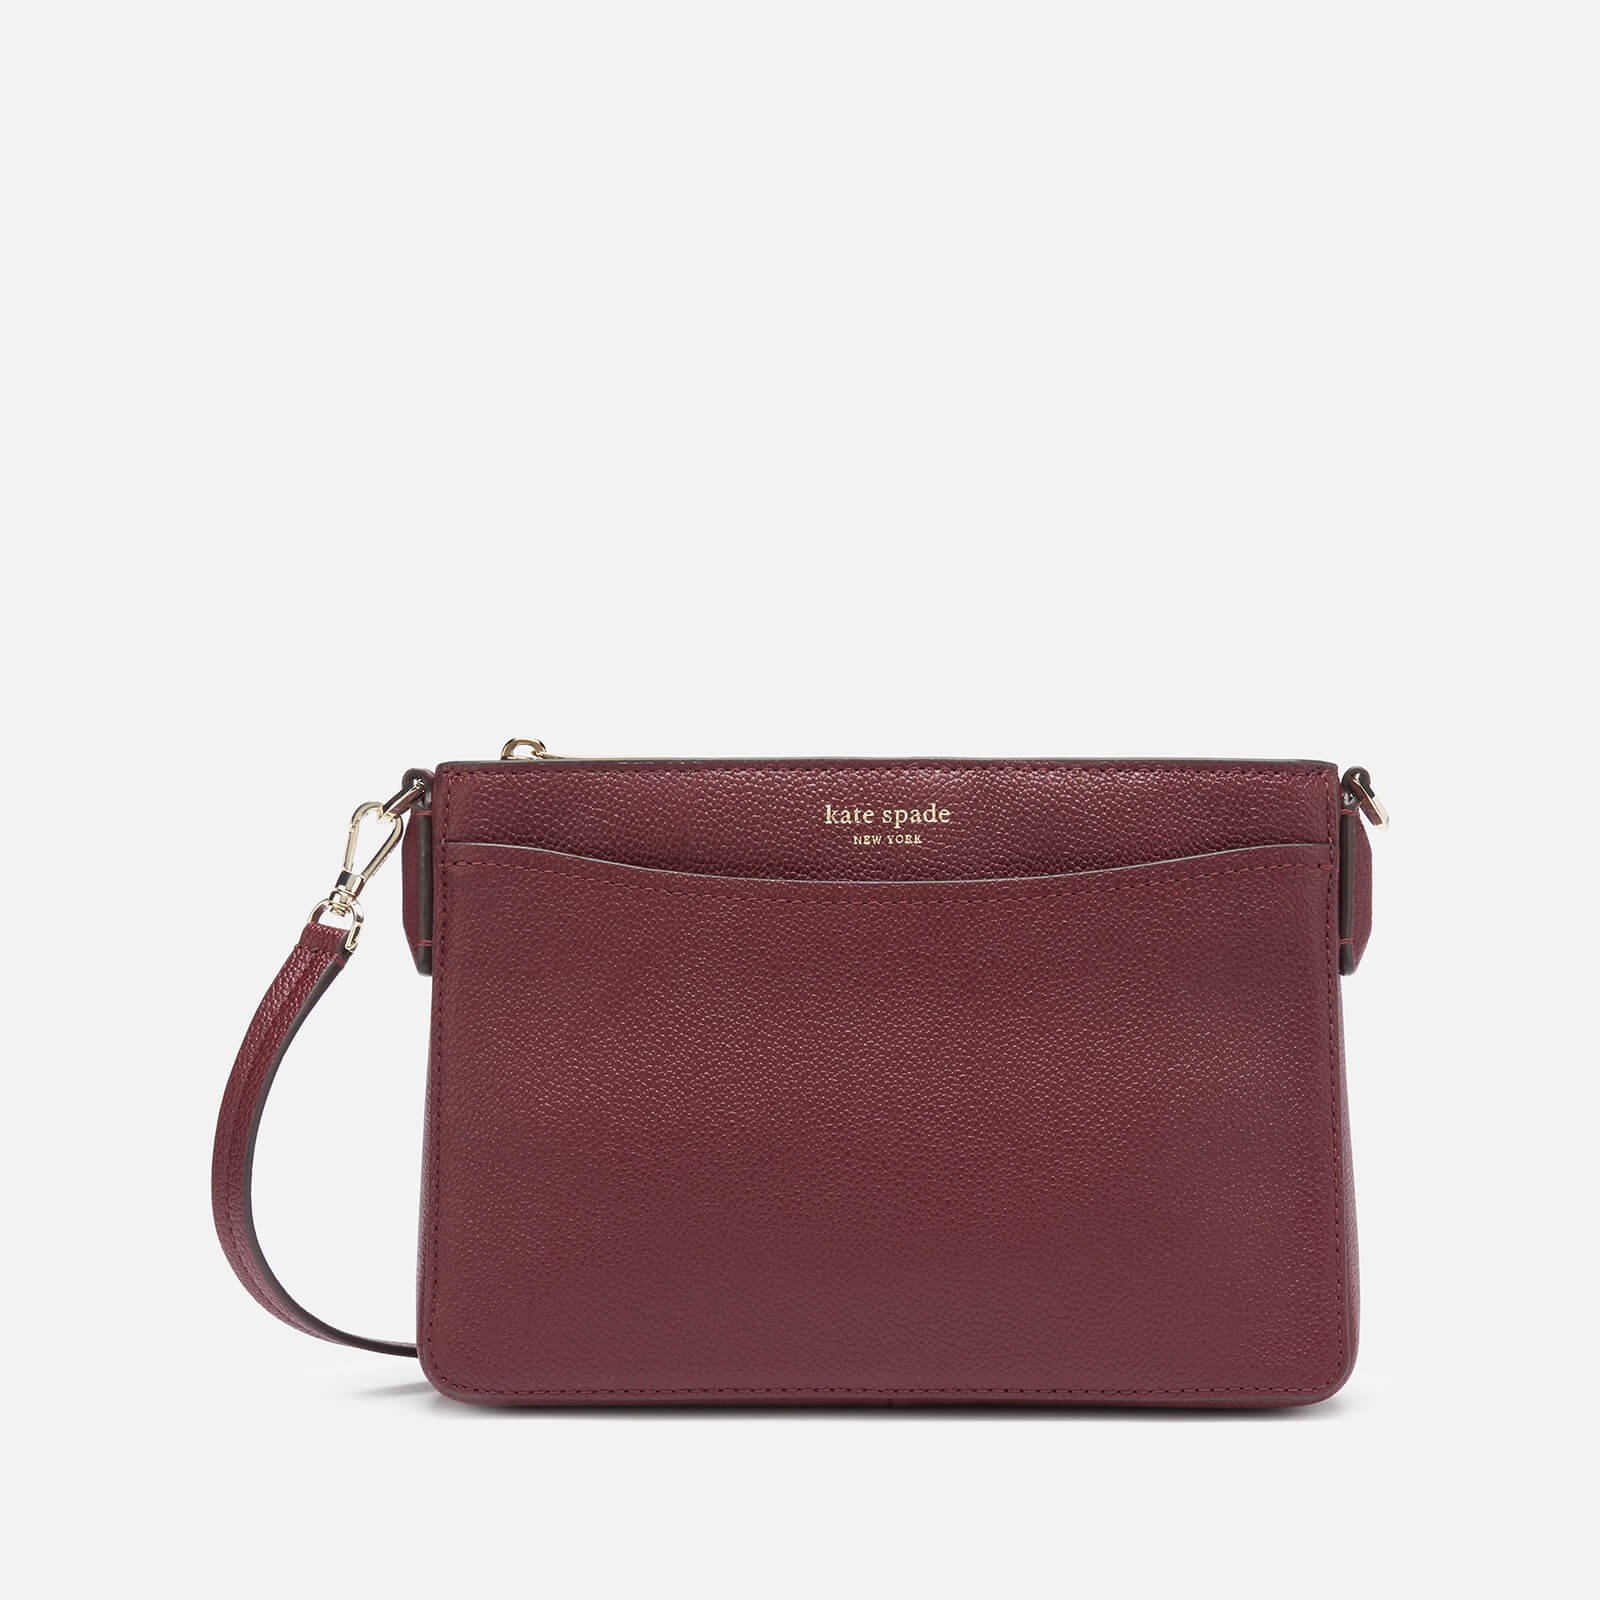 Kate Spade New York Women's Margaux Medium Convertible Cross Body Bag - Cherrywood